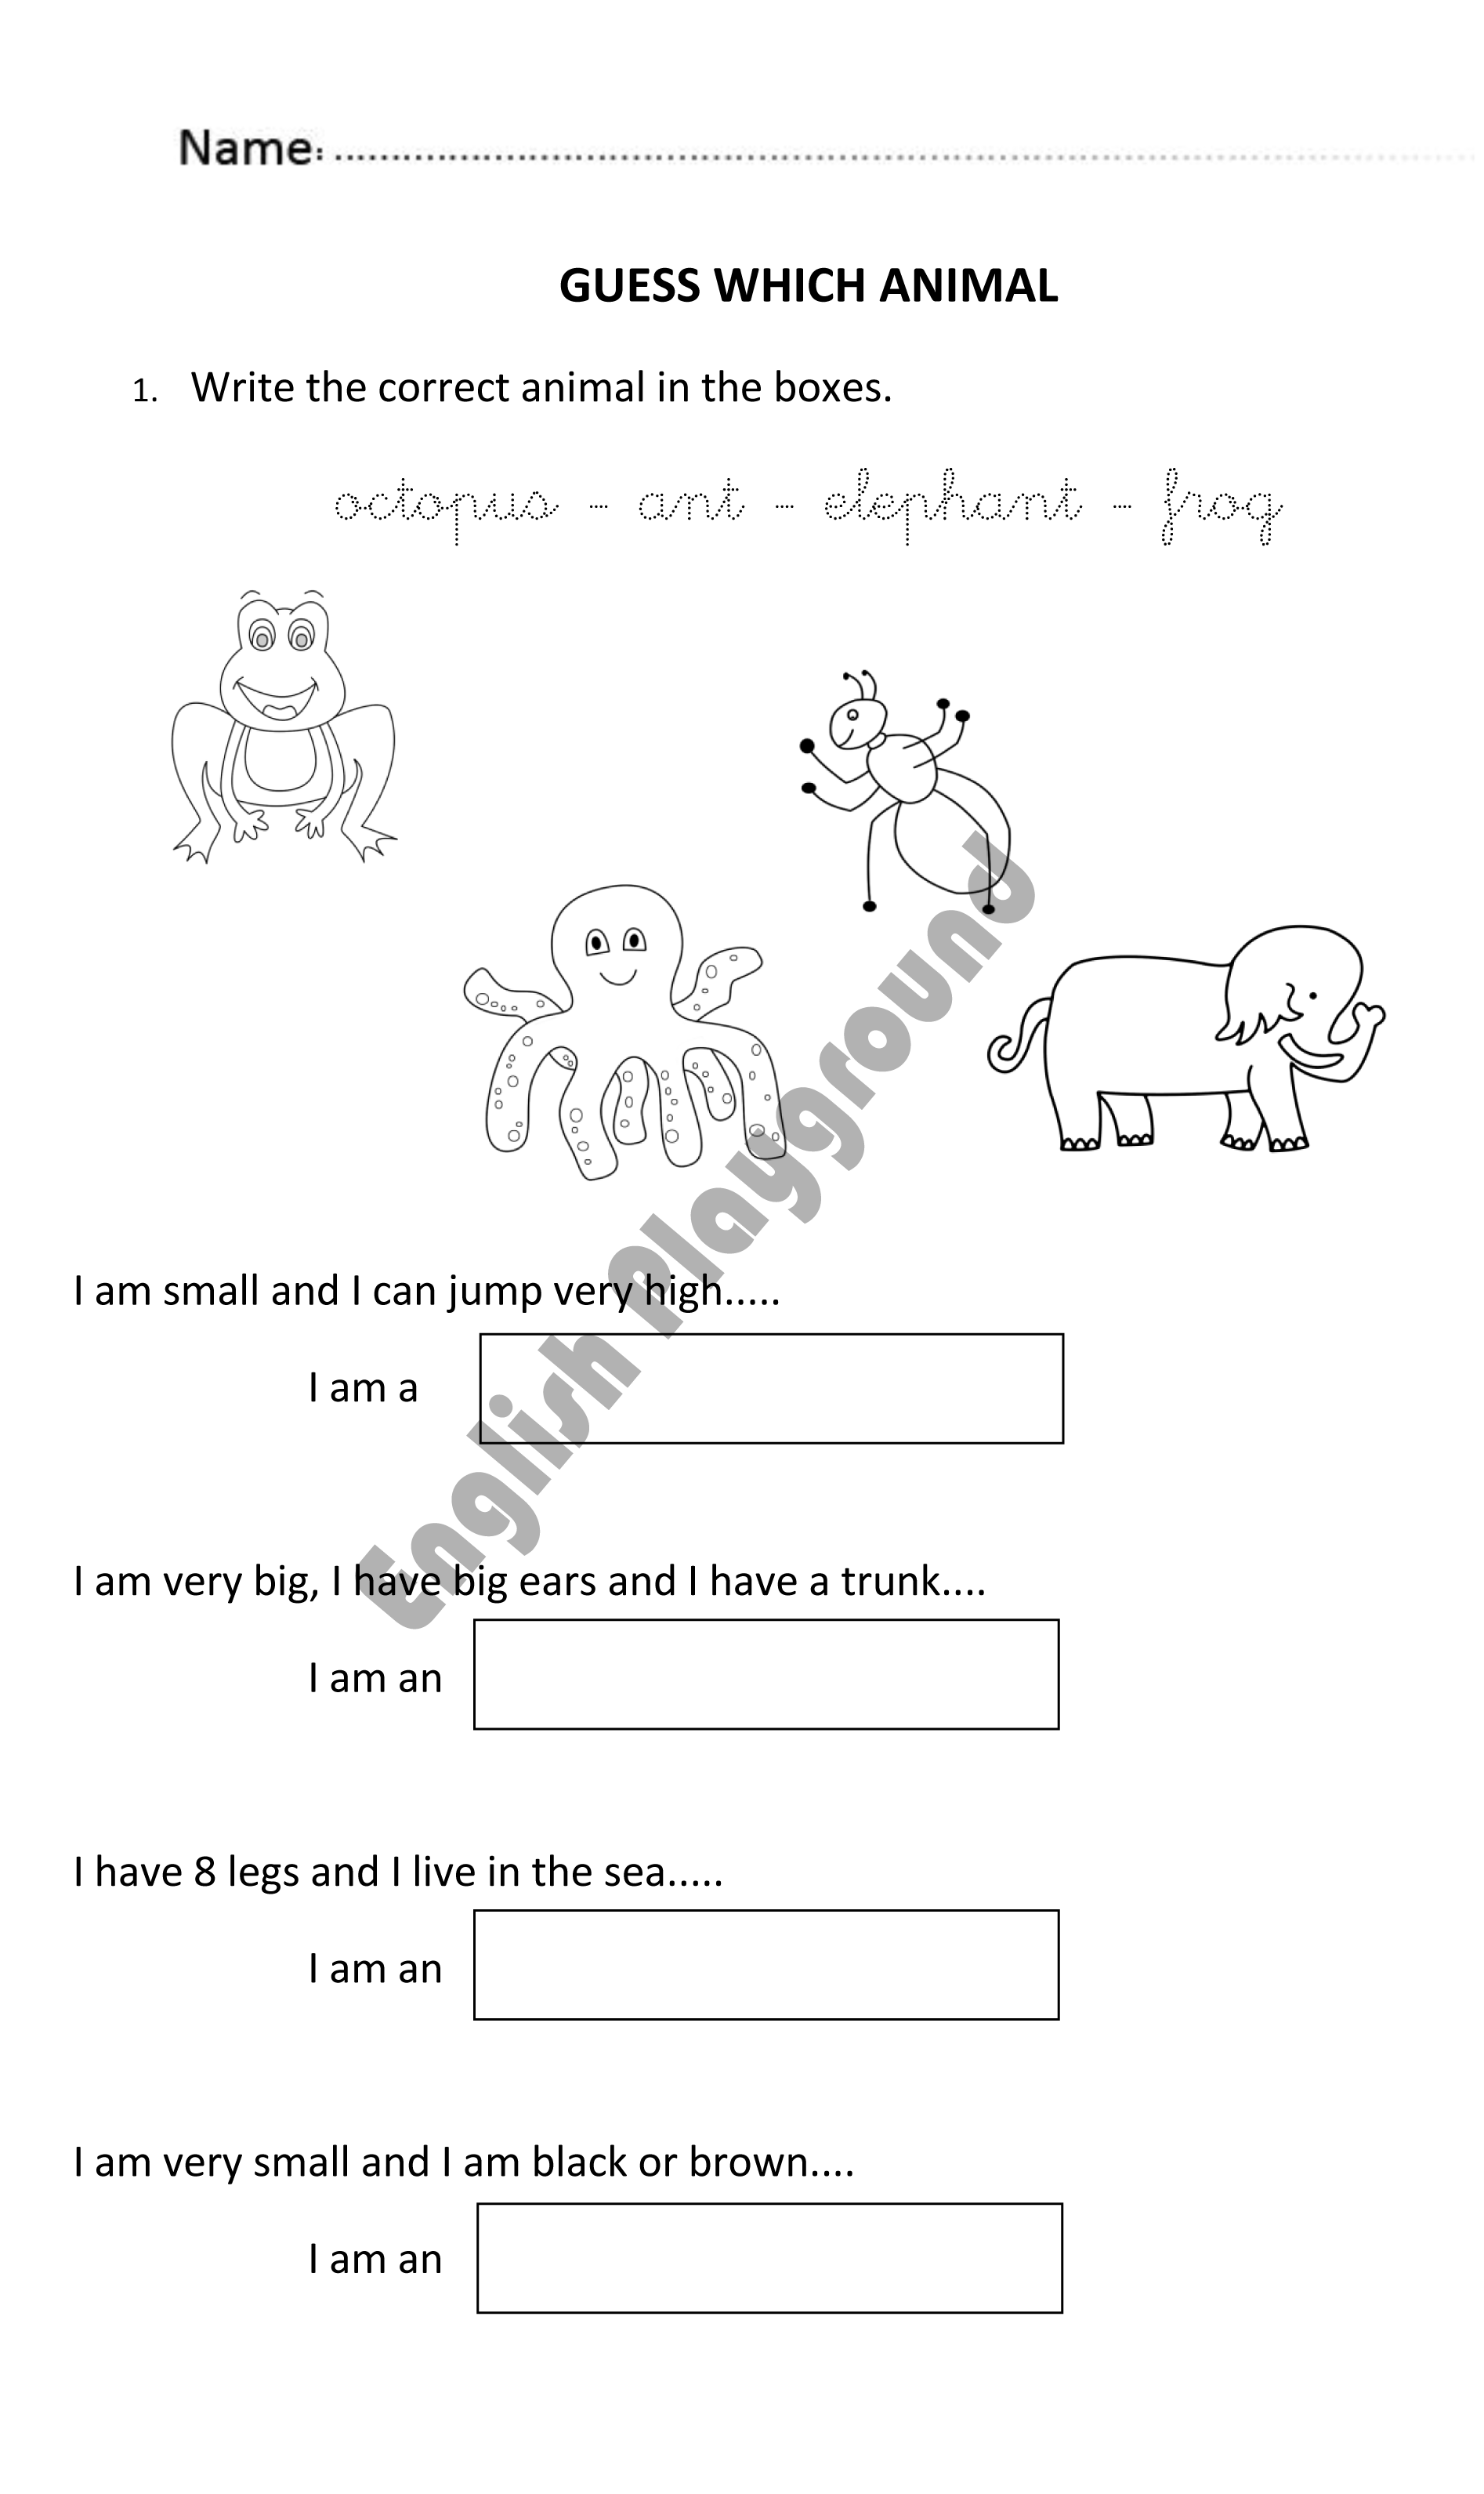 medium resolution of Fun worksheet to guess animals for 5 and 6 years olds. #AnimalWorksheet    Activities for 6 year olds